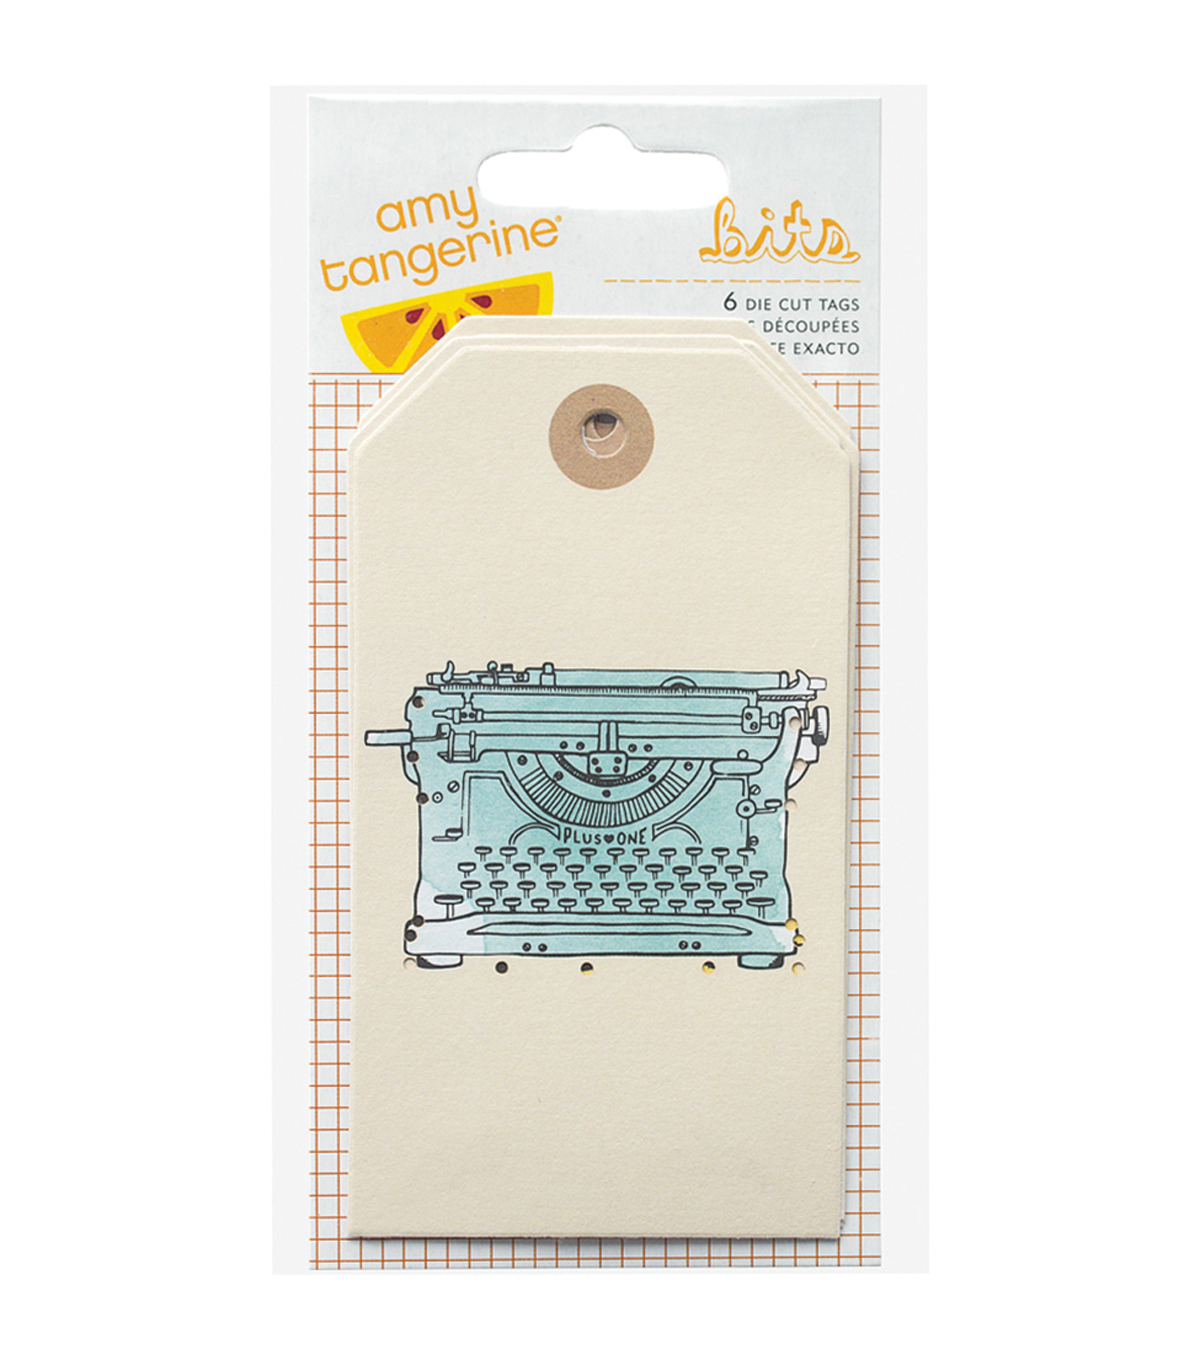 American Crafts Amy Tangerine Plus One Bits Cardstock Die-Cut Tags